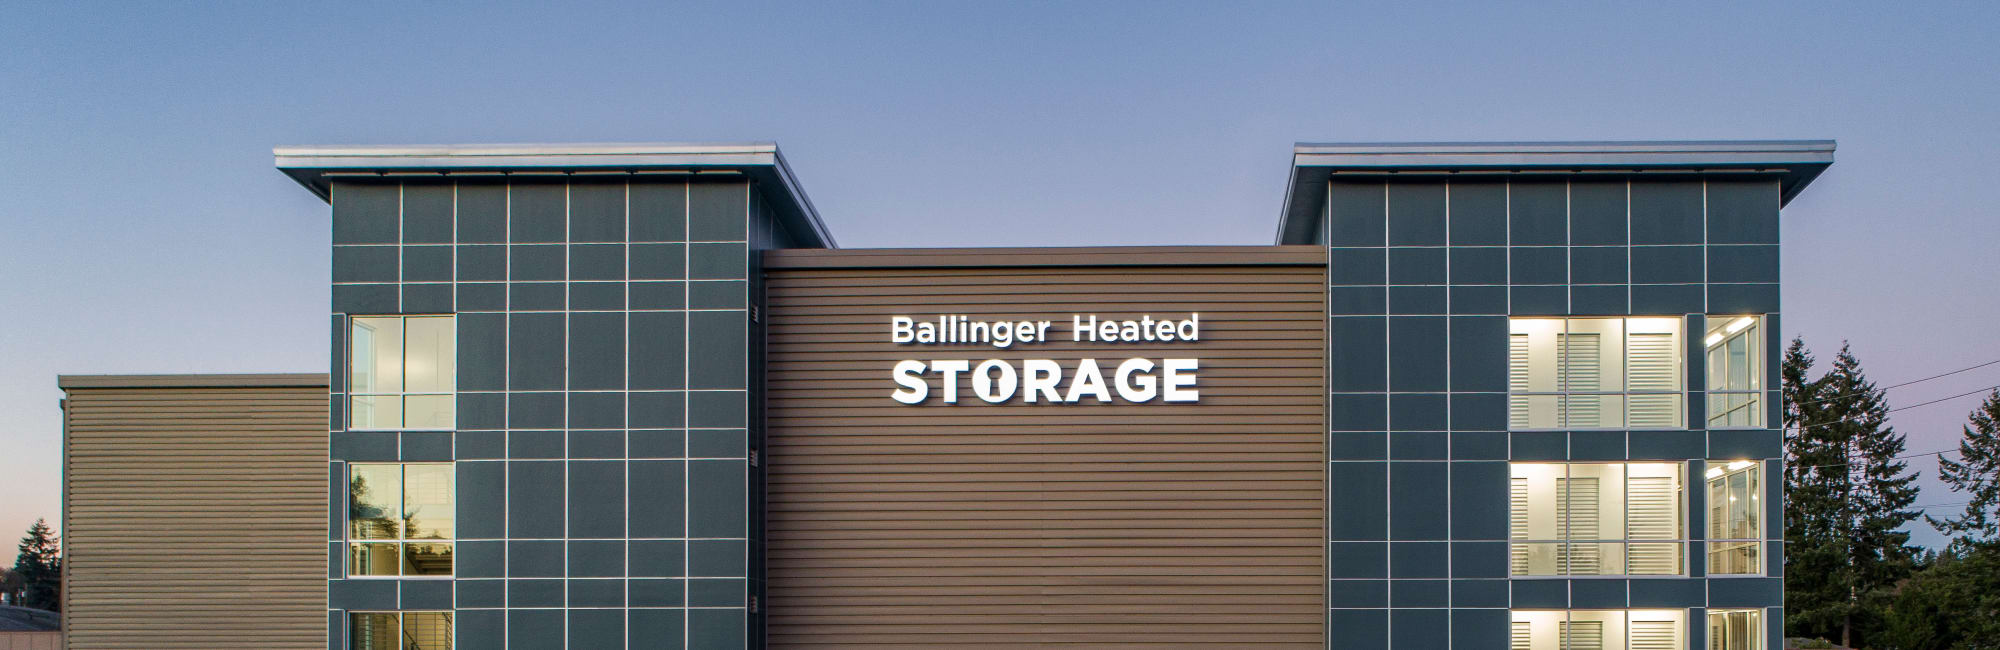 Frequently asked questions at Ballinger Heated Storage in Shoreline, Washington